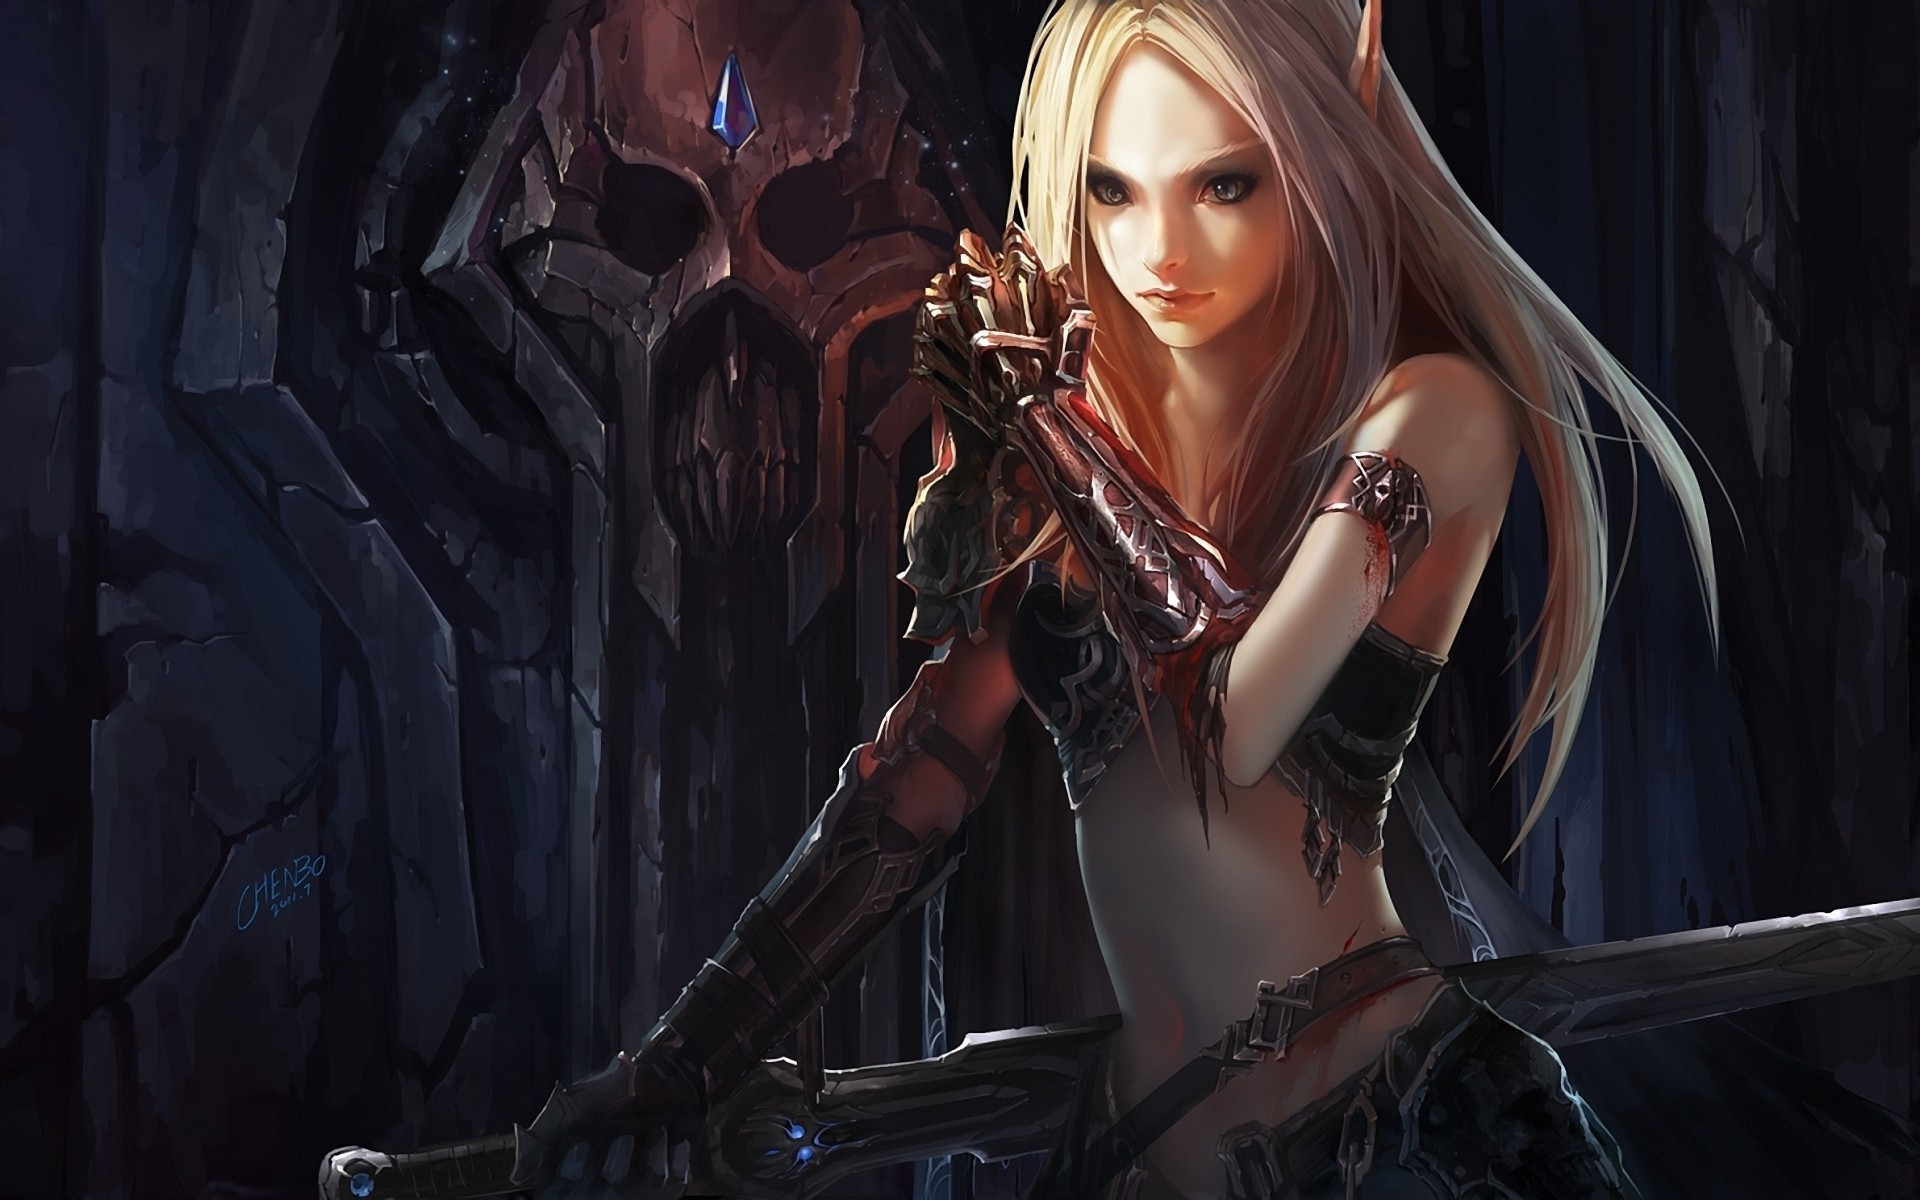 3000x1875 World Of Warcraft Sylvanas Dark Lady Wallpapers HD Desktop And Mobile Backgrounds